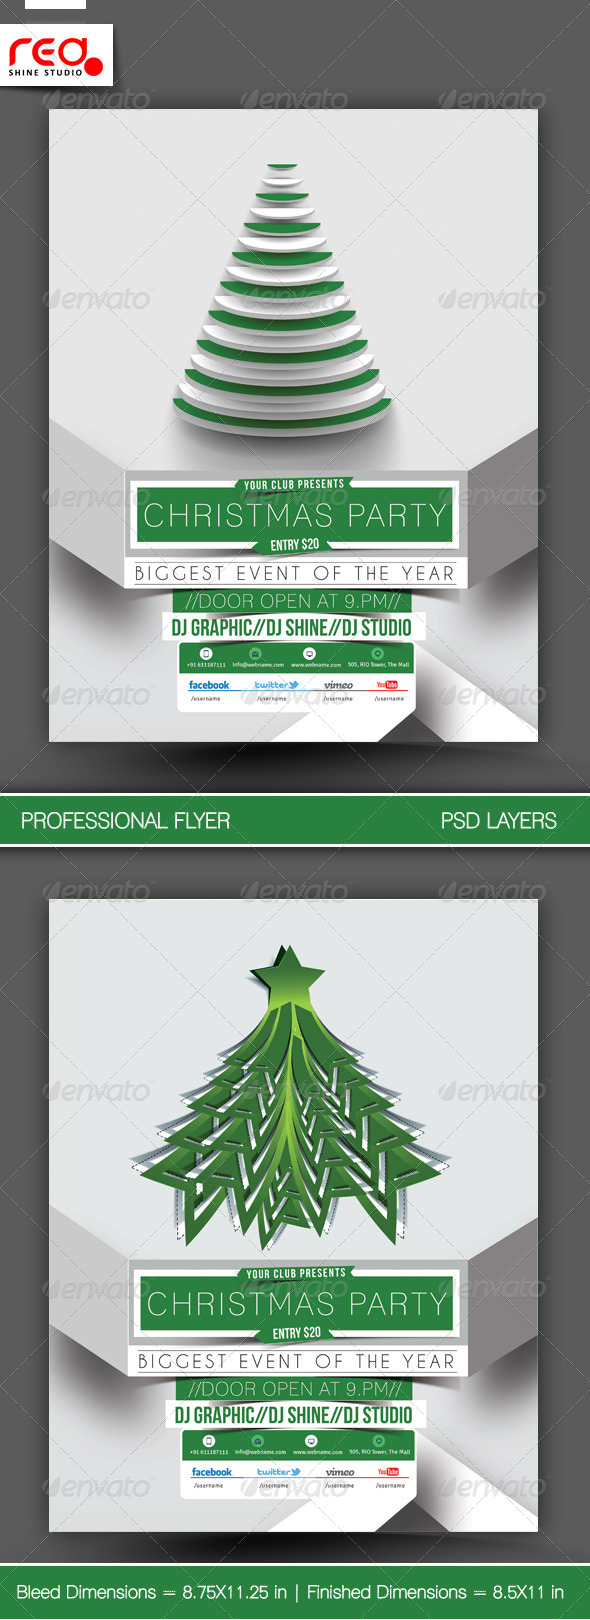 Christmas Party Flyer & Poster Template - 2 - Clubs & Parties Events